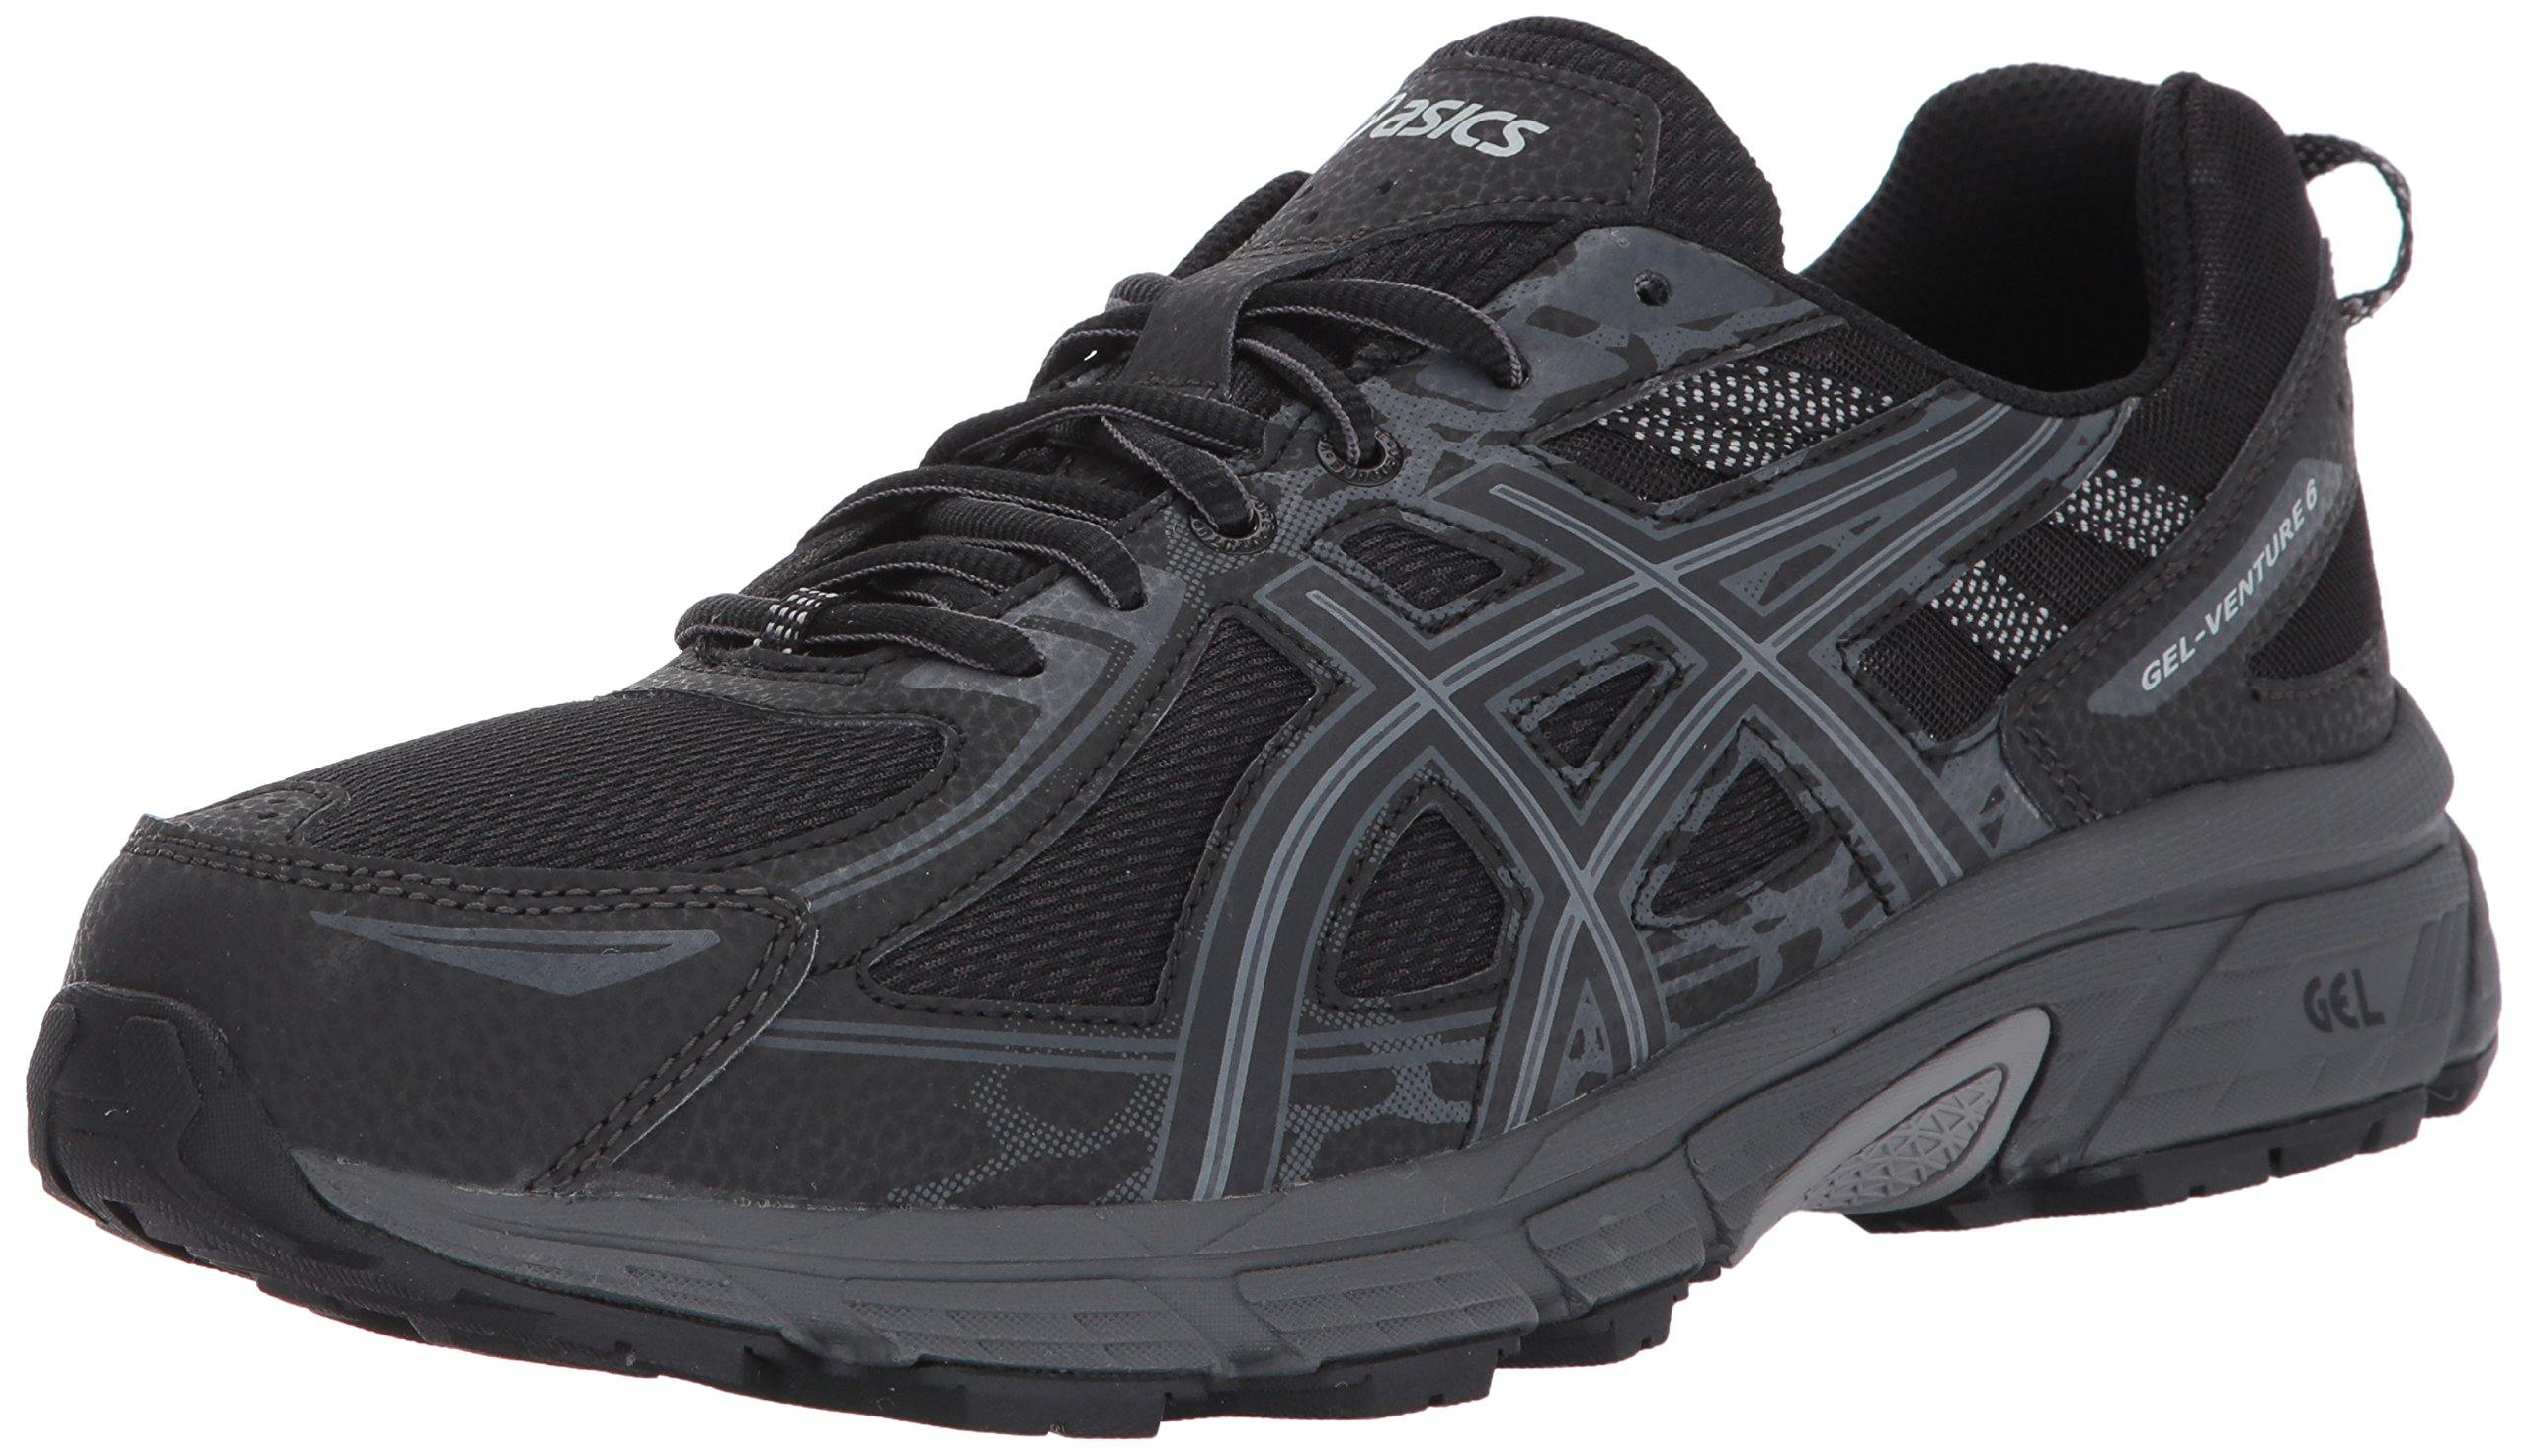 ASICS Mens Gel-Venture 6 Running Shoe, Black/Phantom/Mid Grey, 7 Medium US